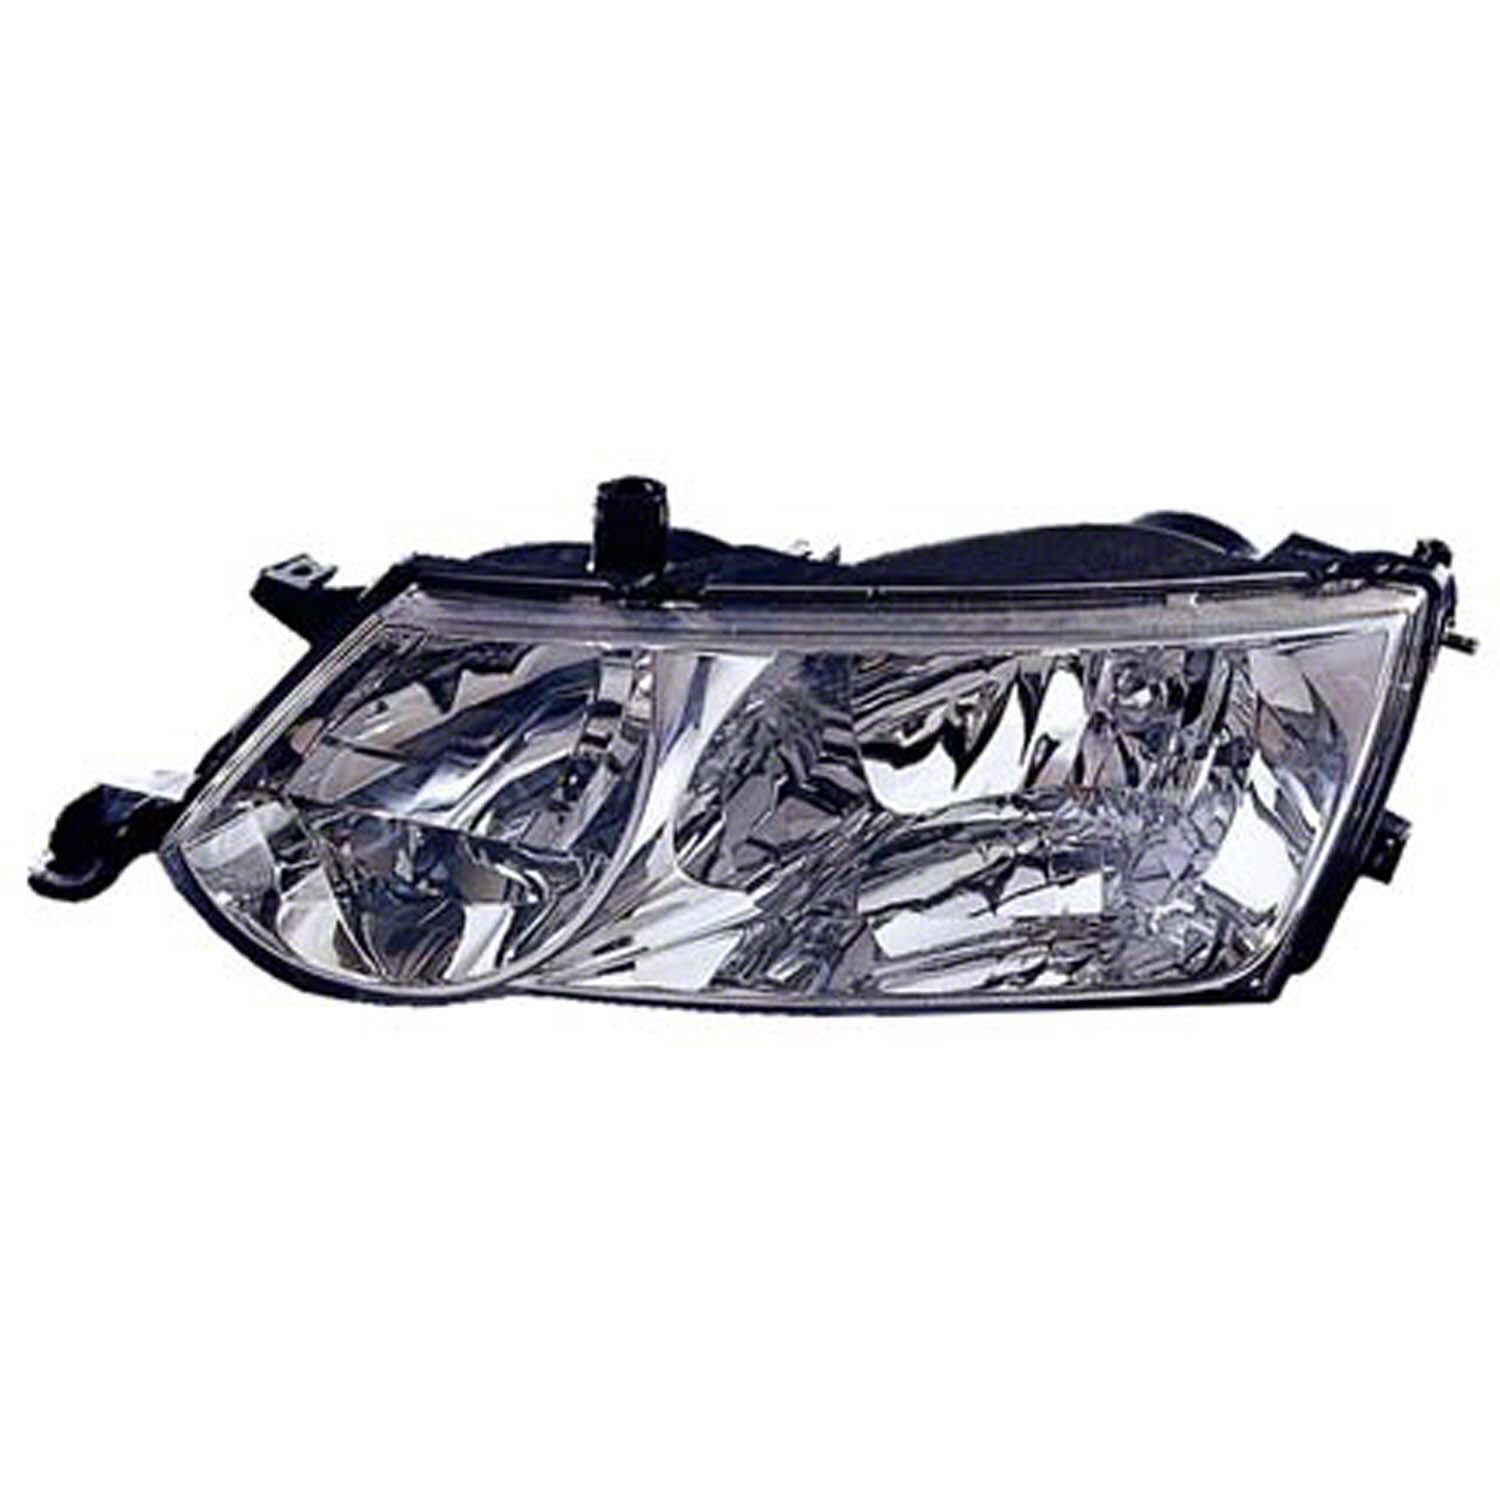 New Aftermarket Passenger Side Front Head Lamp Assembly 81110AA050-V